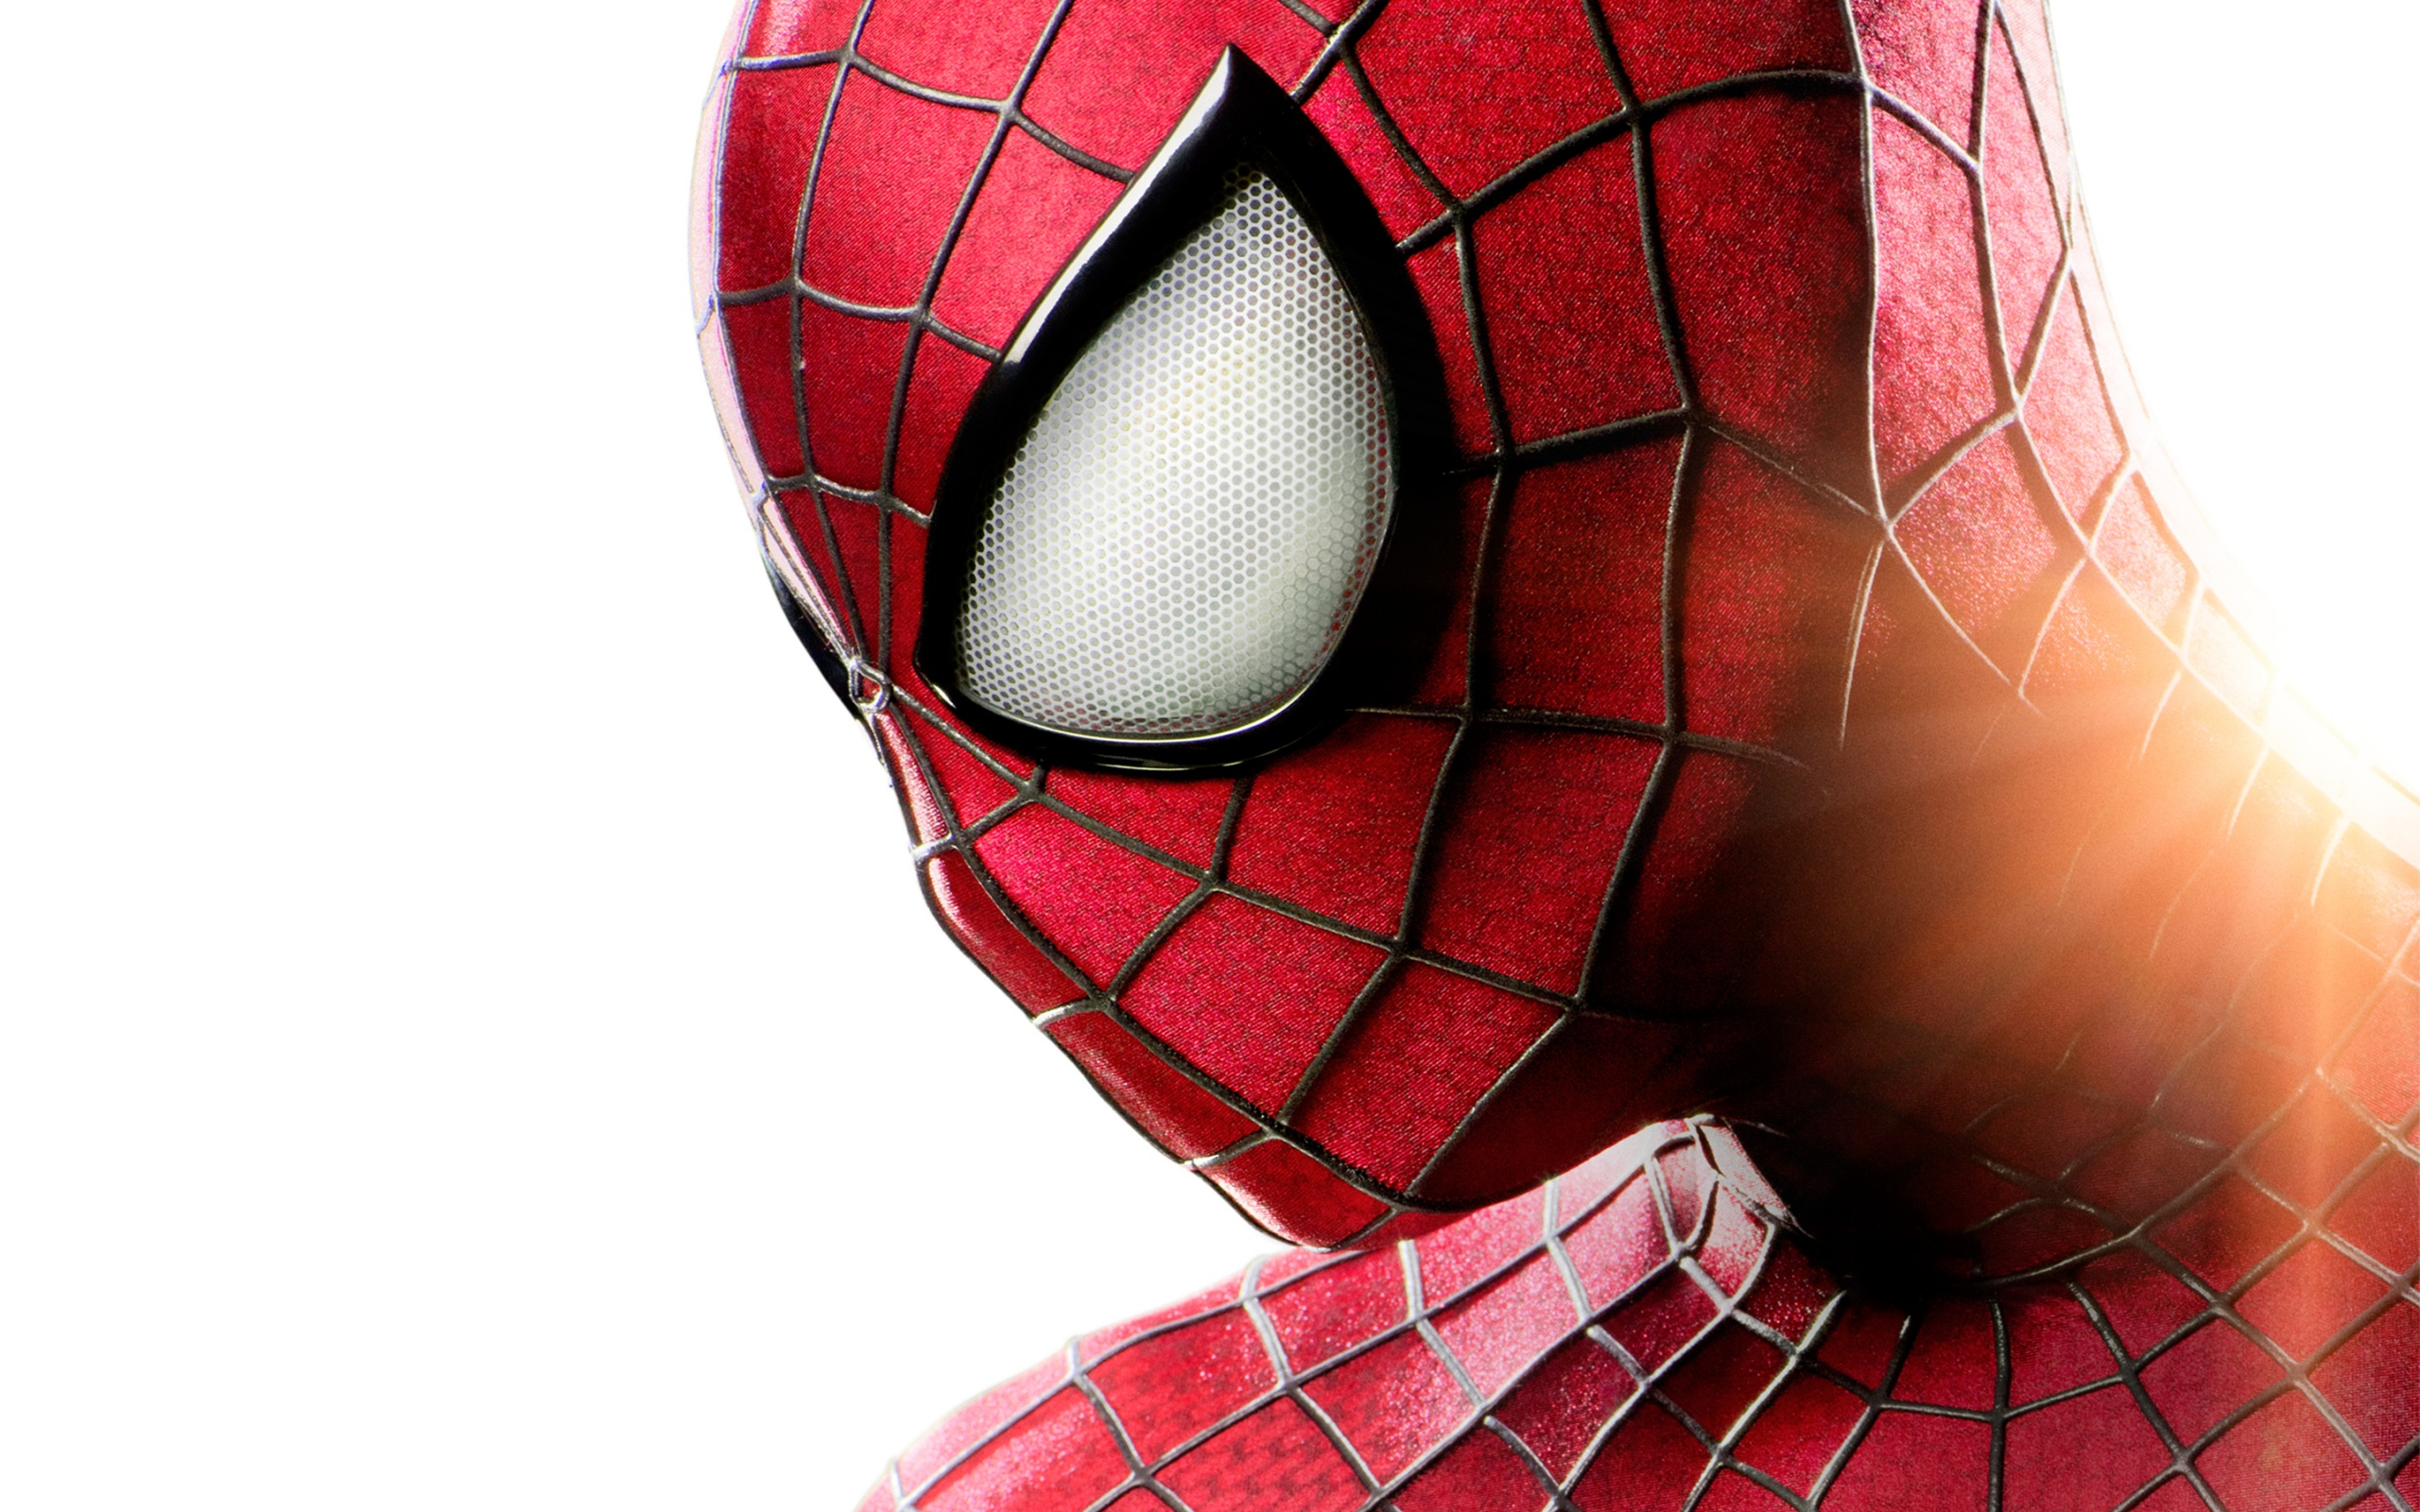 The Amazing Spider Man 2 Wallpapers In Jpg Format For Free Download